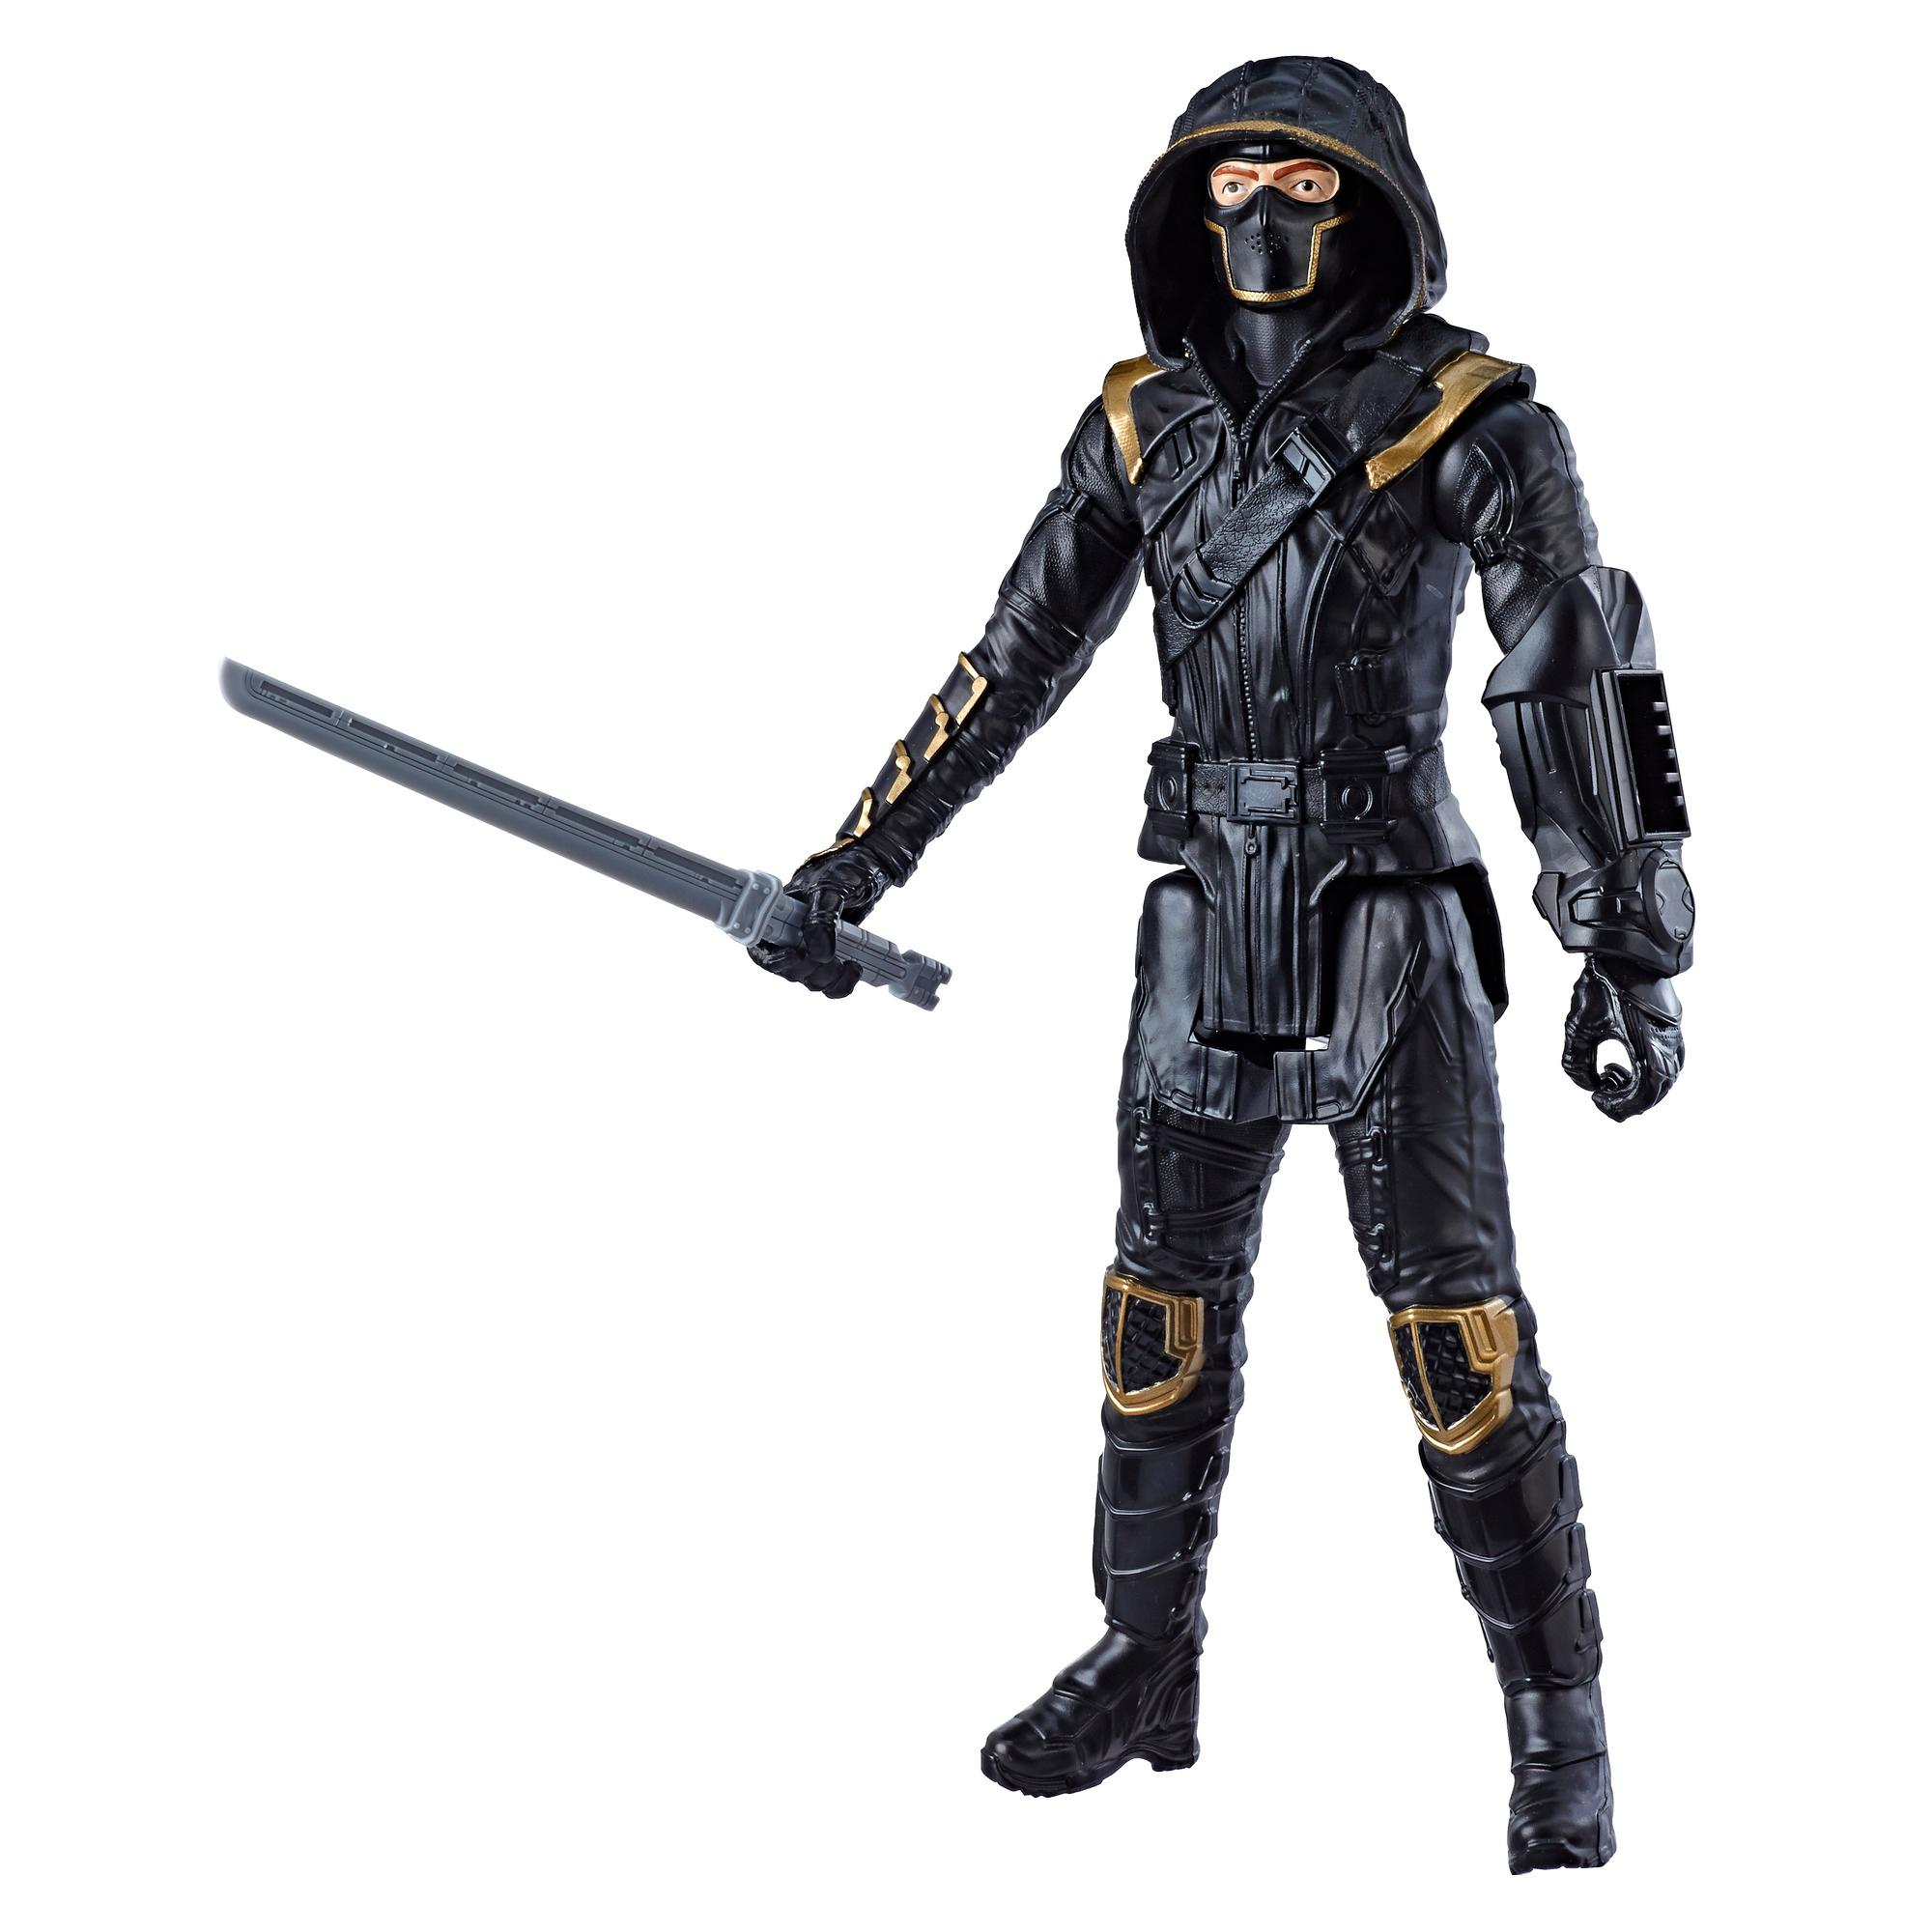 Marvel Avengers: Endgame - Ronin Titan Hero compatibile con Power FX (Action Figure da 30 cm, Power FX non incluso)